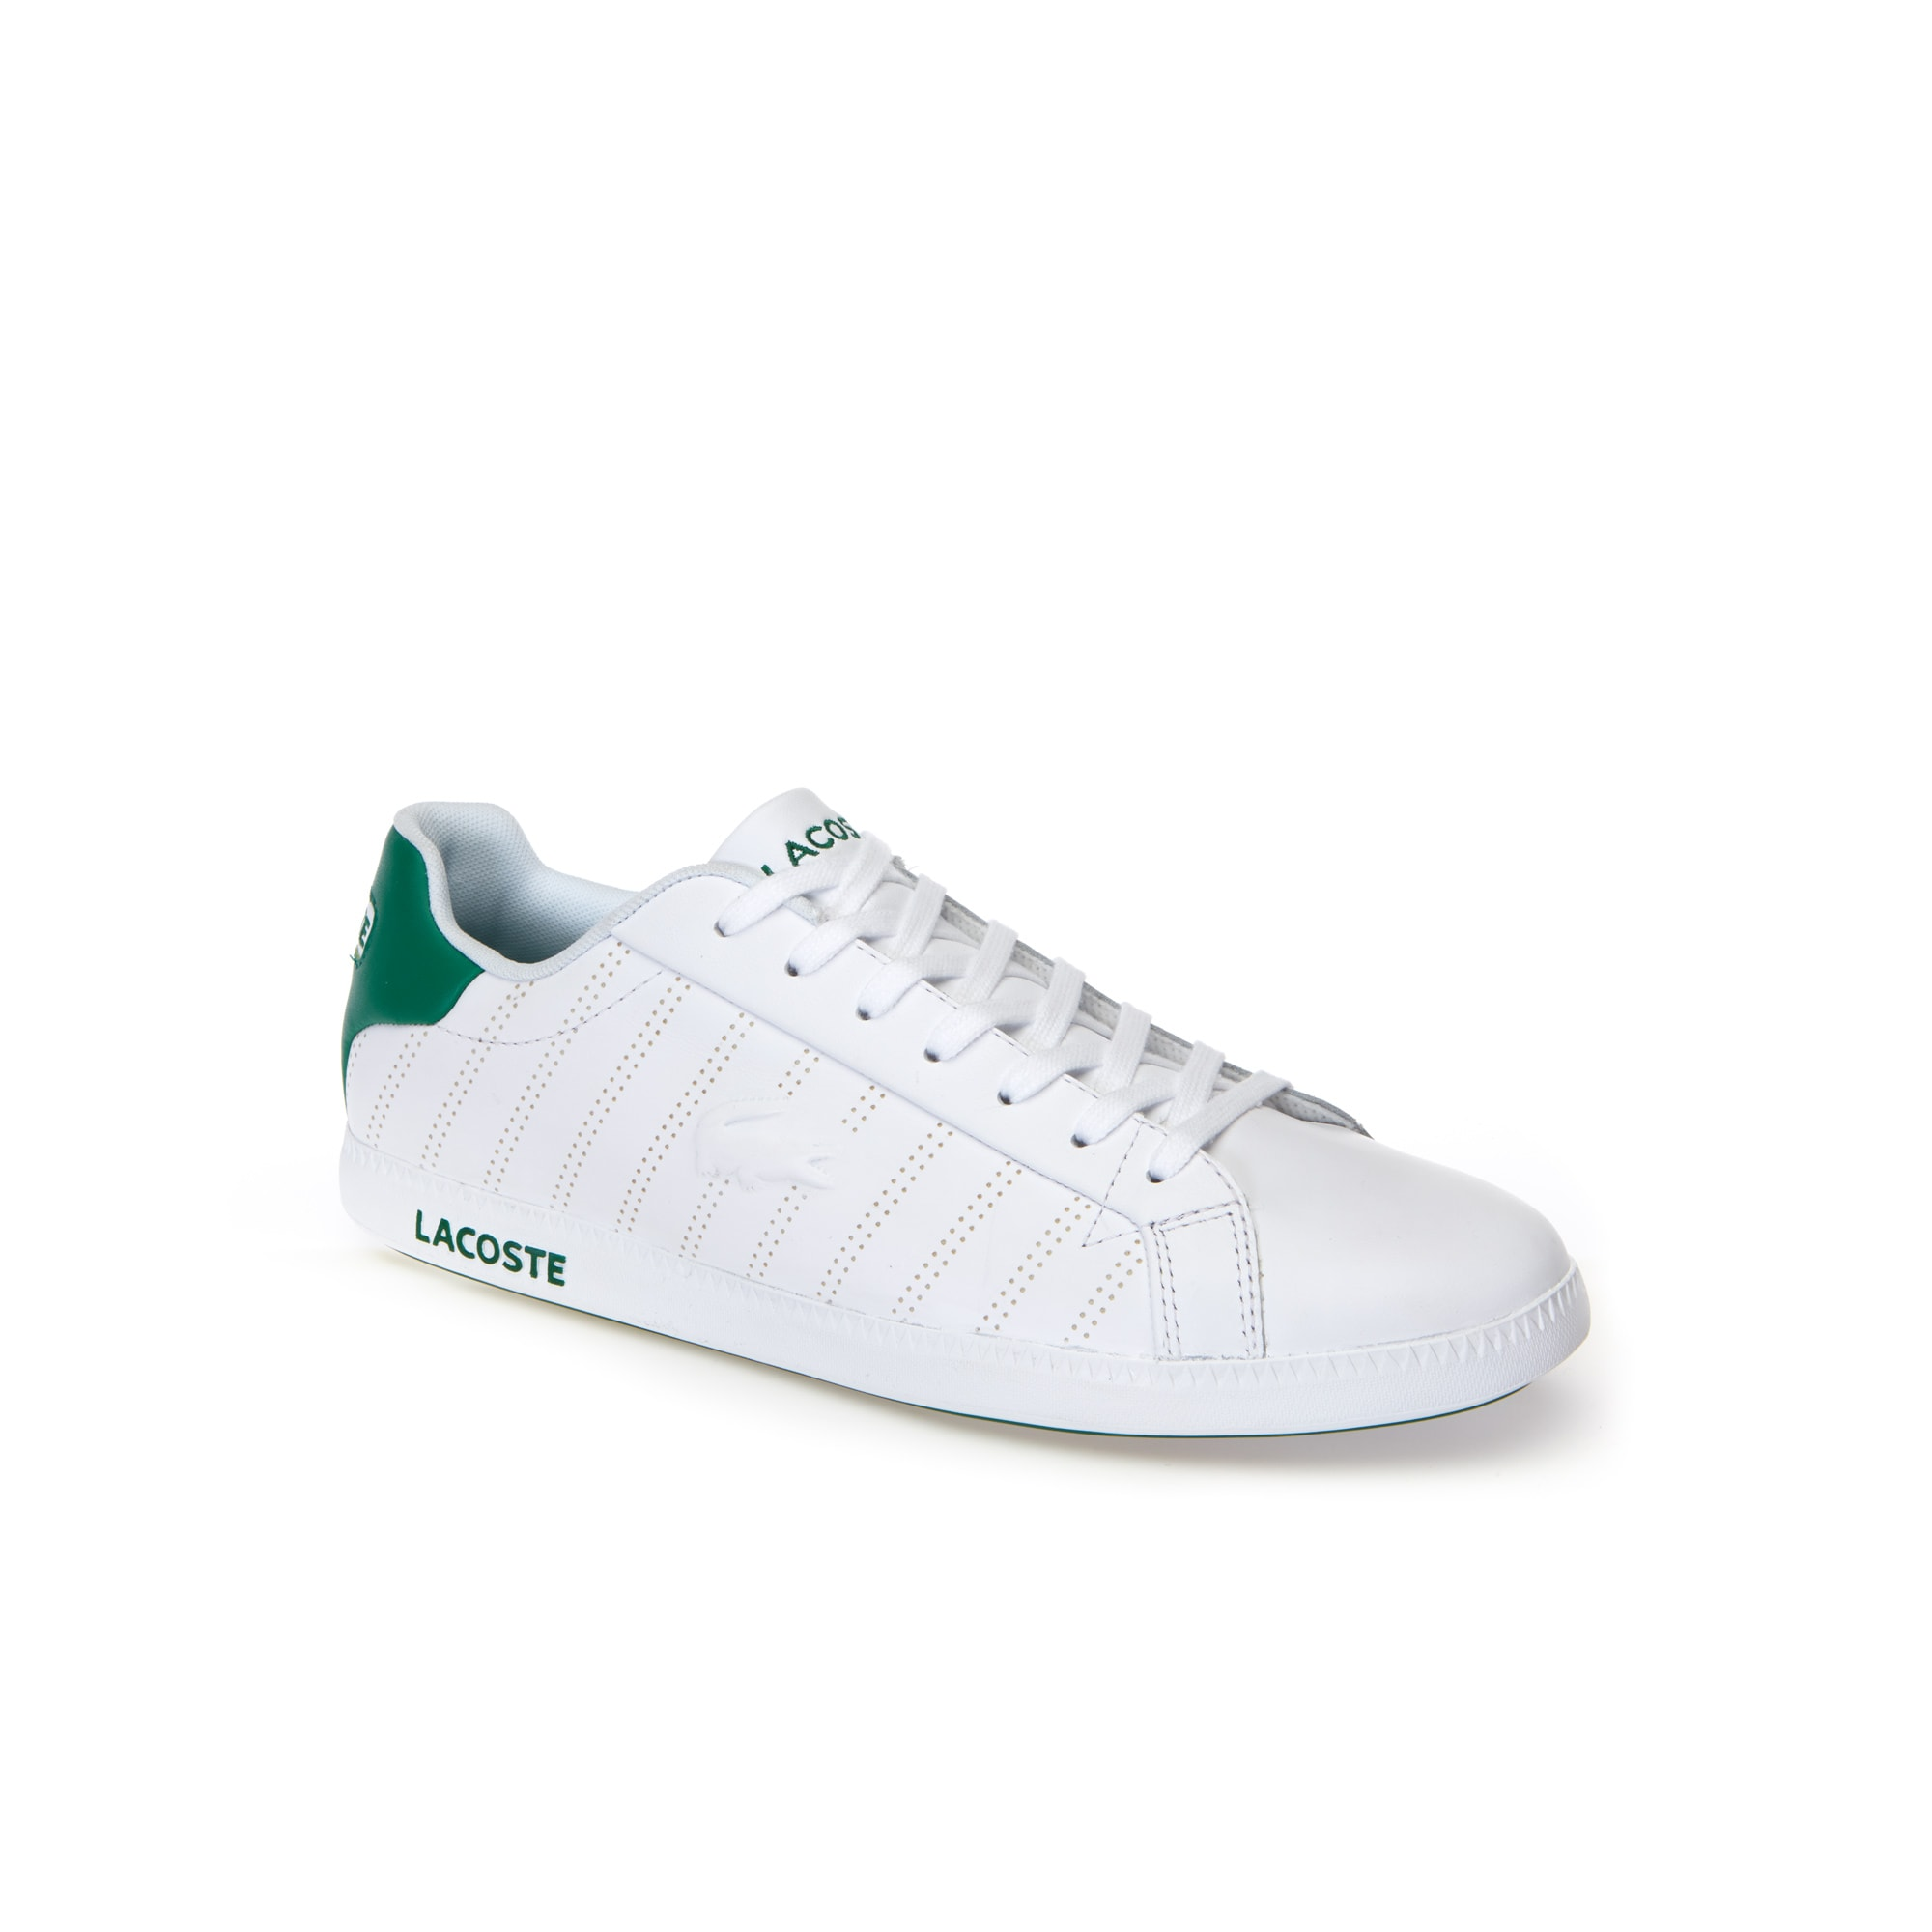 Lacoste MEN'S GRADUATE NAPPA LEATHER TRAINERS 1giEPjlB